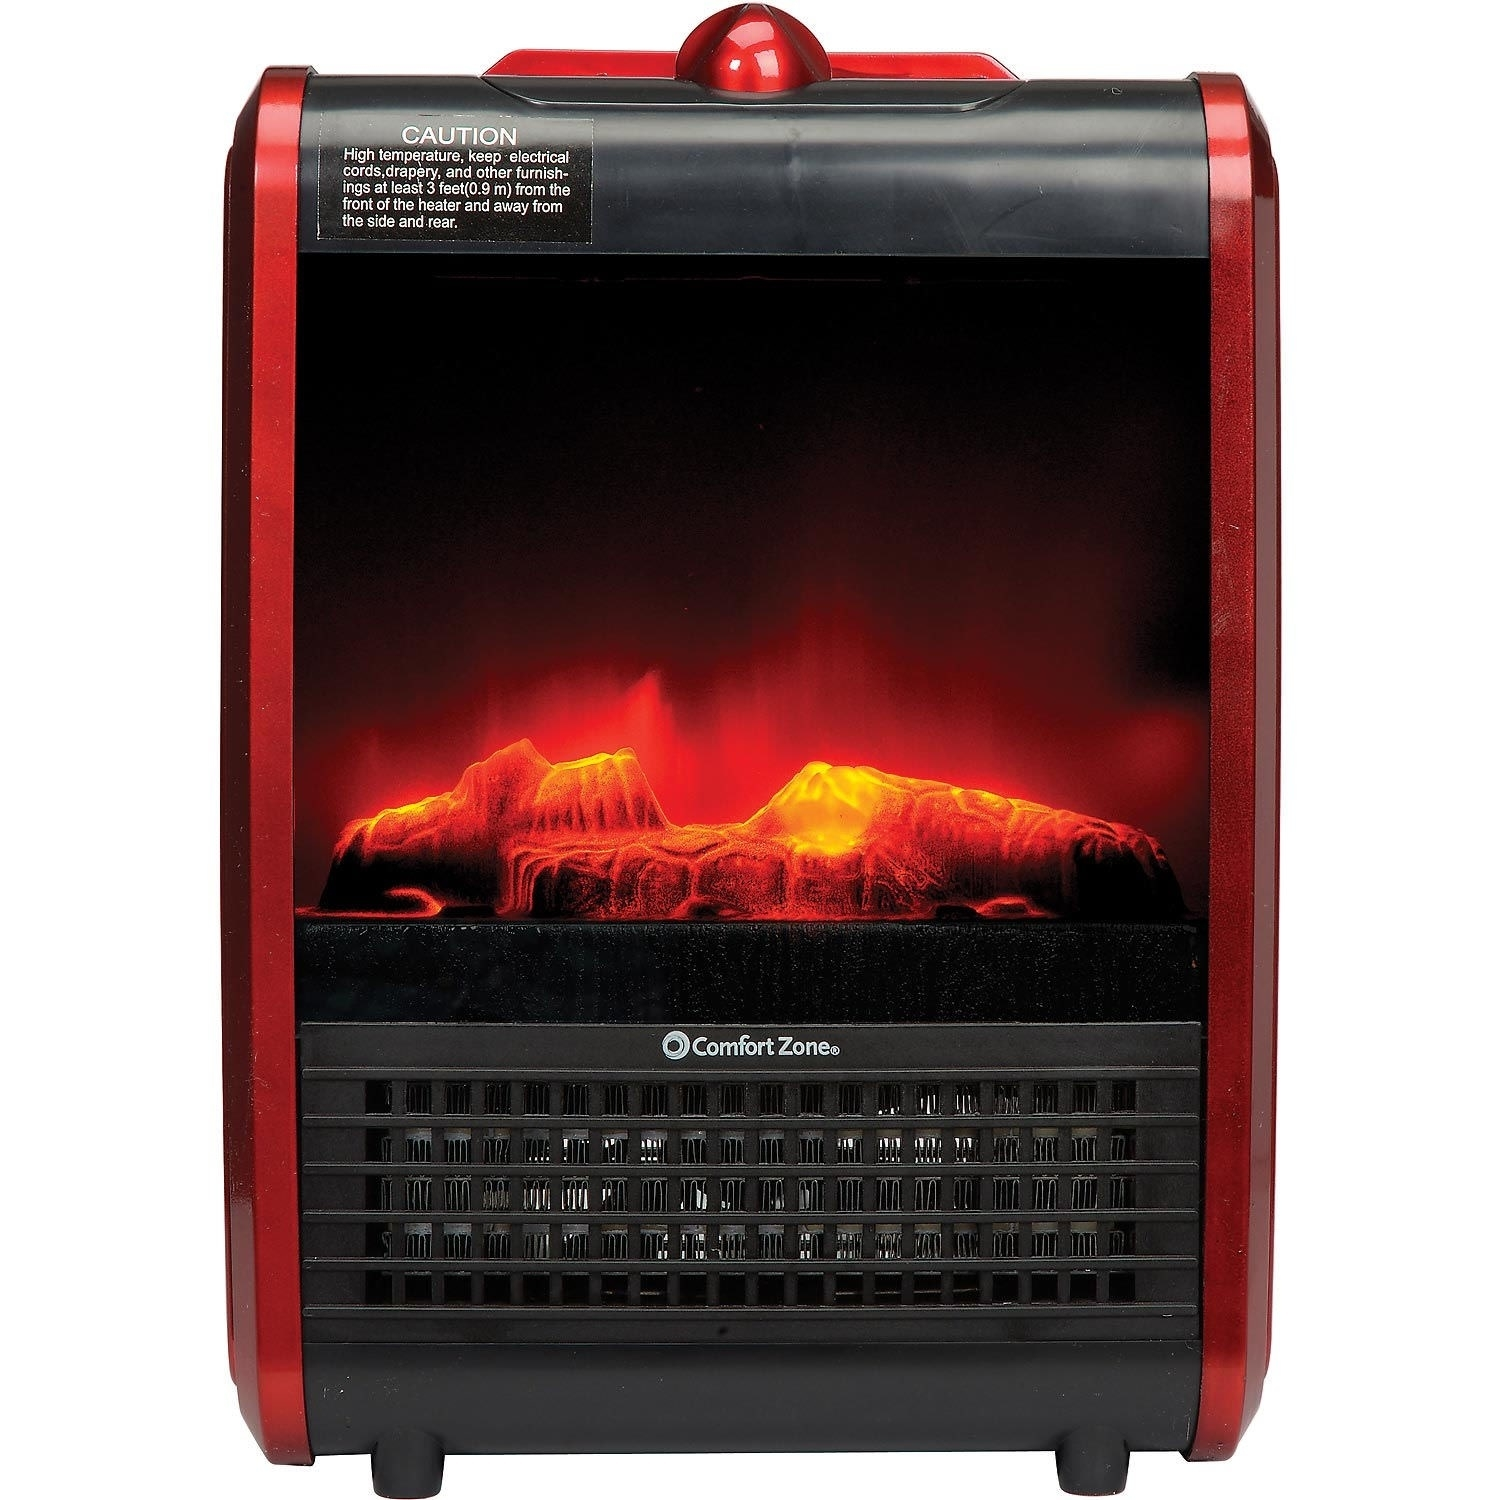 Comfort Zone Portable Fireplace Heater 5bd3382bc58a6260eb324262